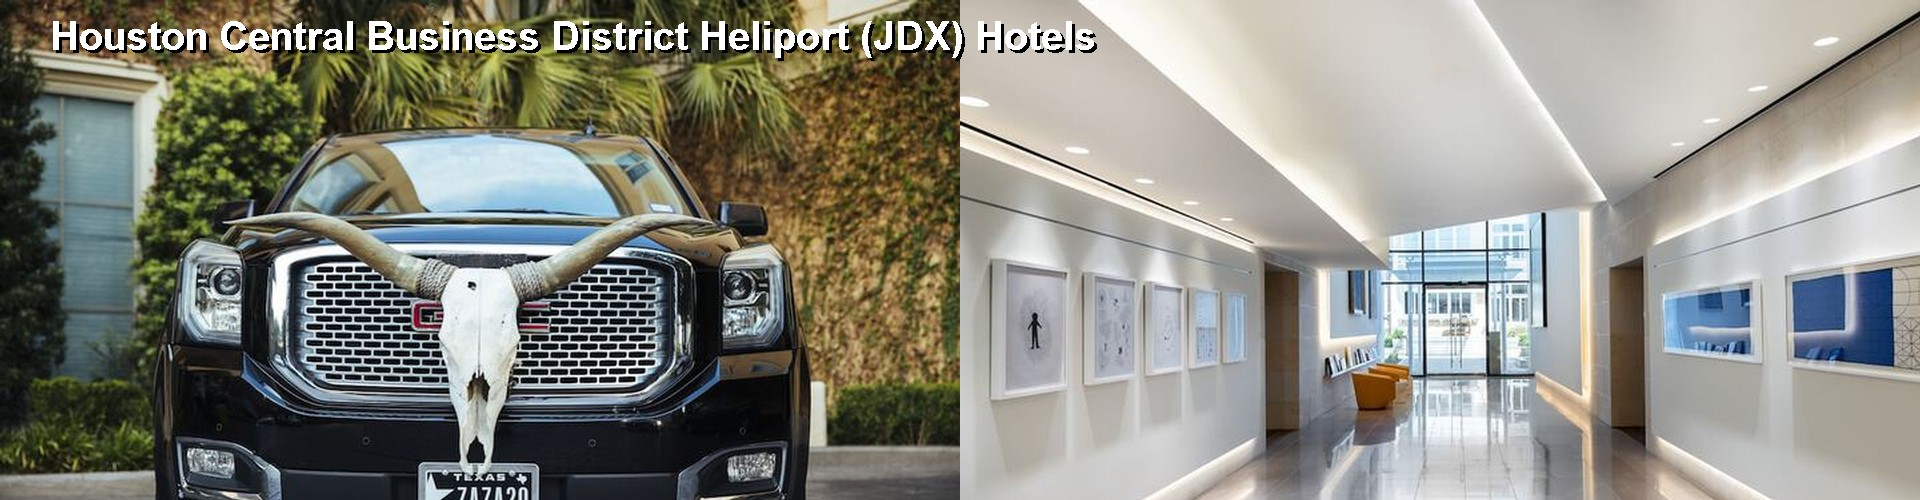 5 Best Hotels near Houston Central Business District Heliport (JDX)